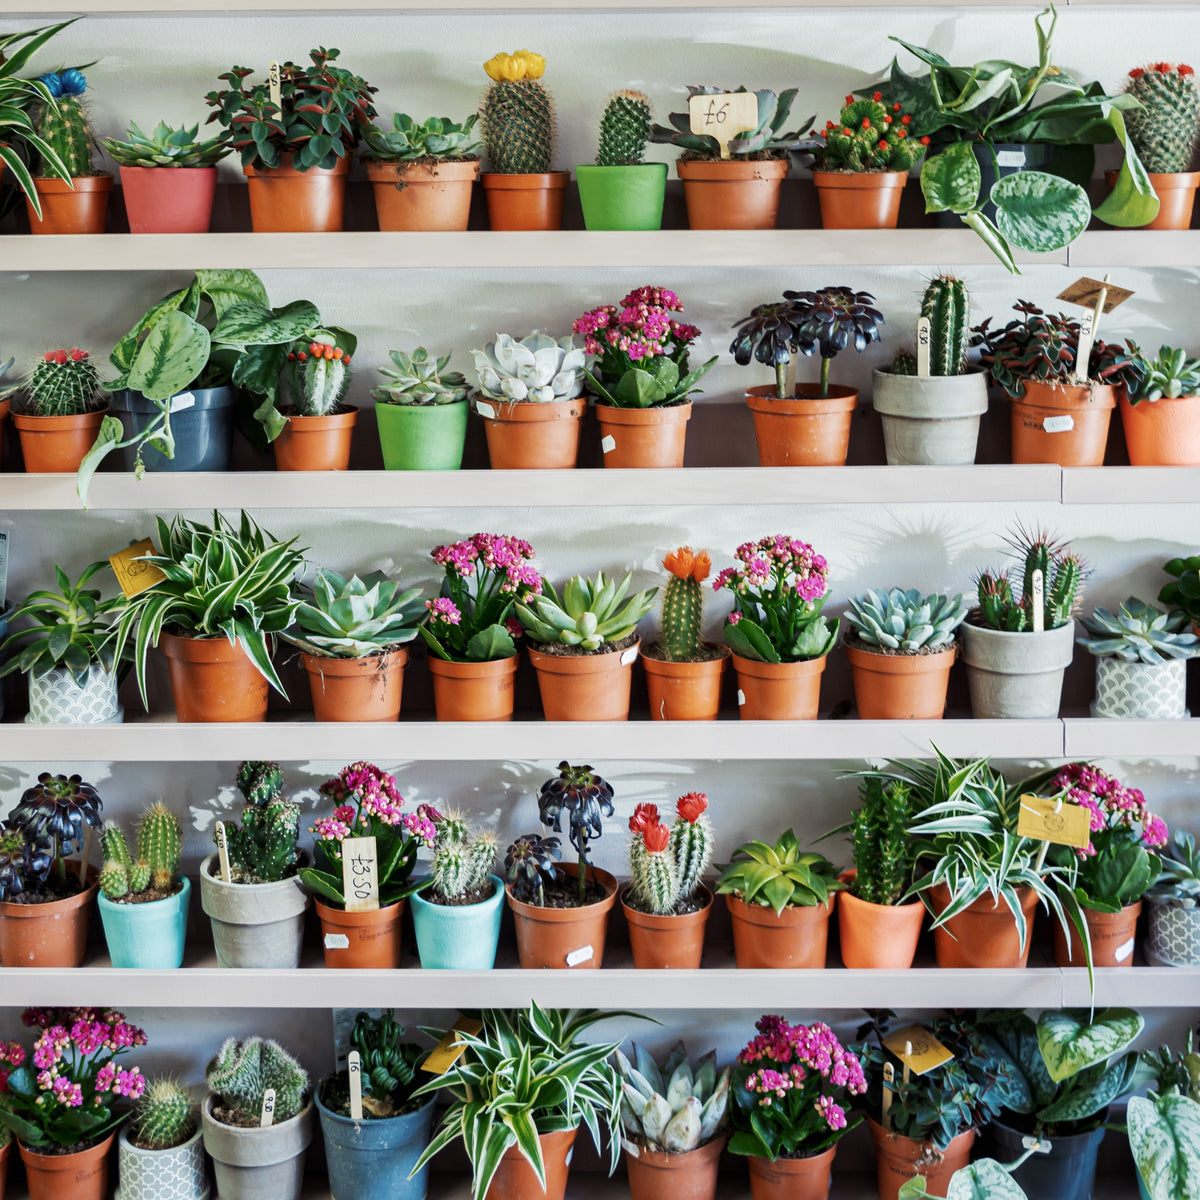 How indoor plants can improve your mental wellbeing